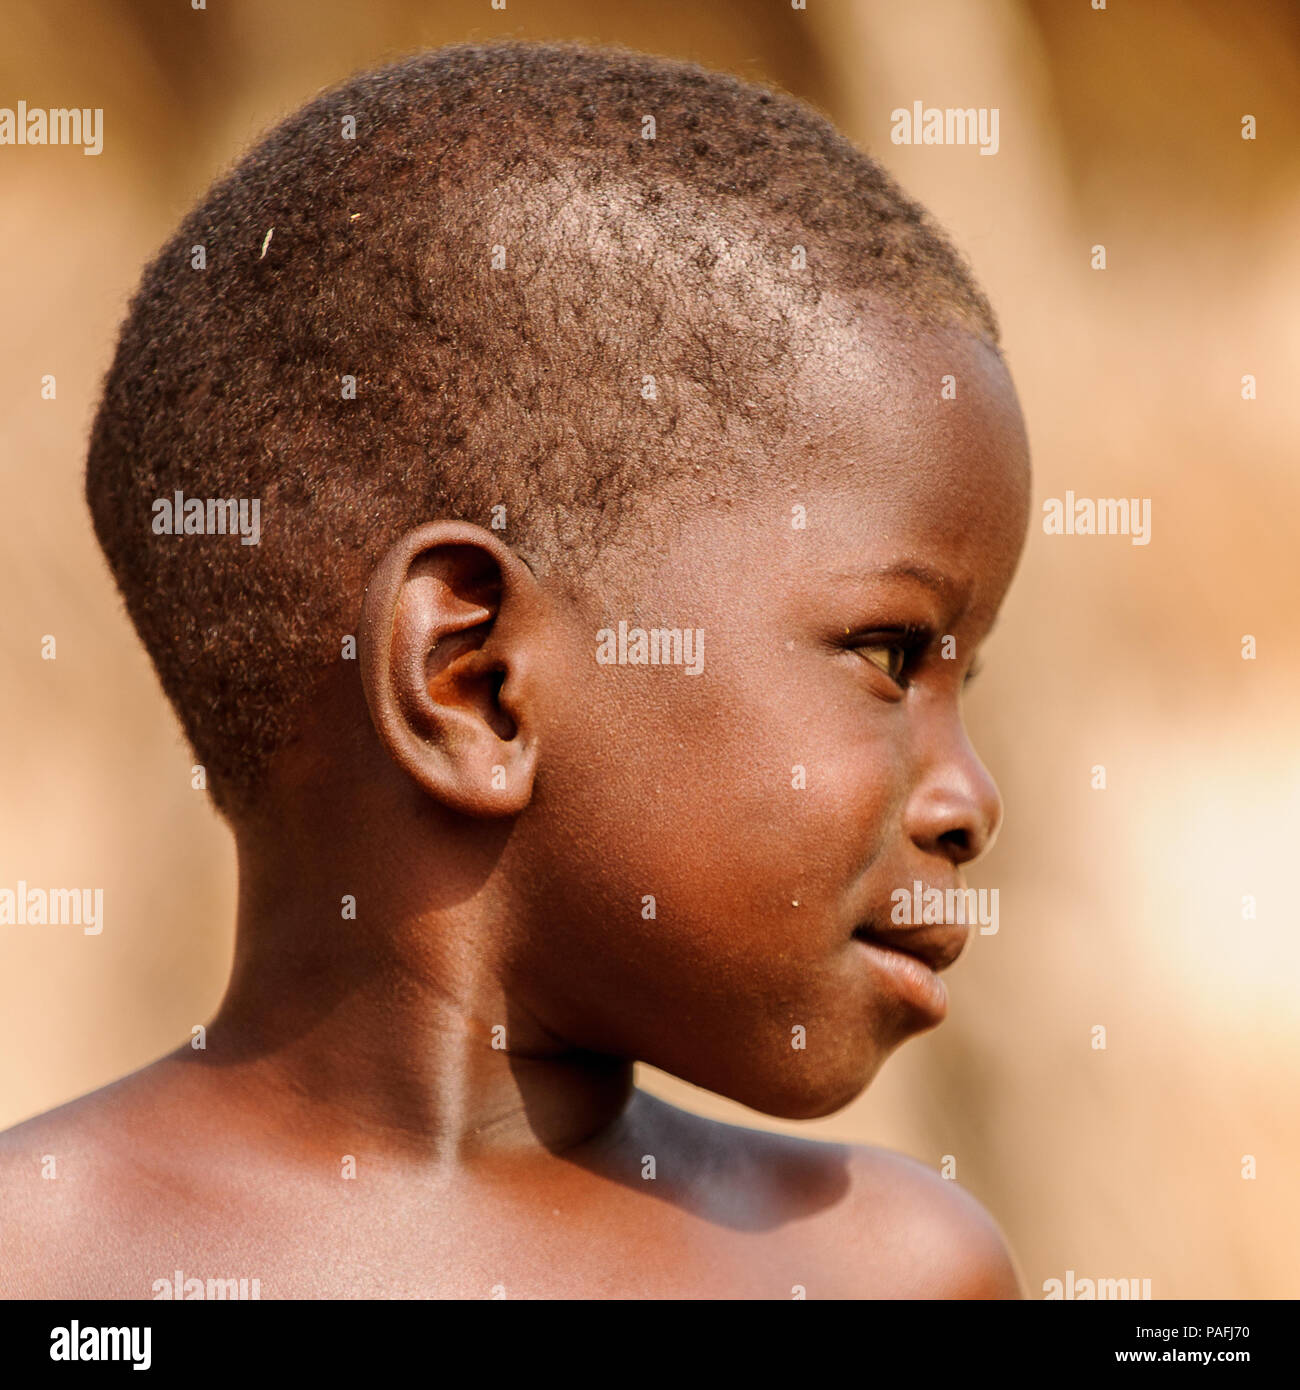 ACCRA, GHANA - MARCH 6, 2012: Unidentified Ghanaian boy smiles in the street in Ghana. Children of Ghana suffer of poverty due to the unstable economi - Stock Image